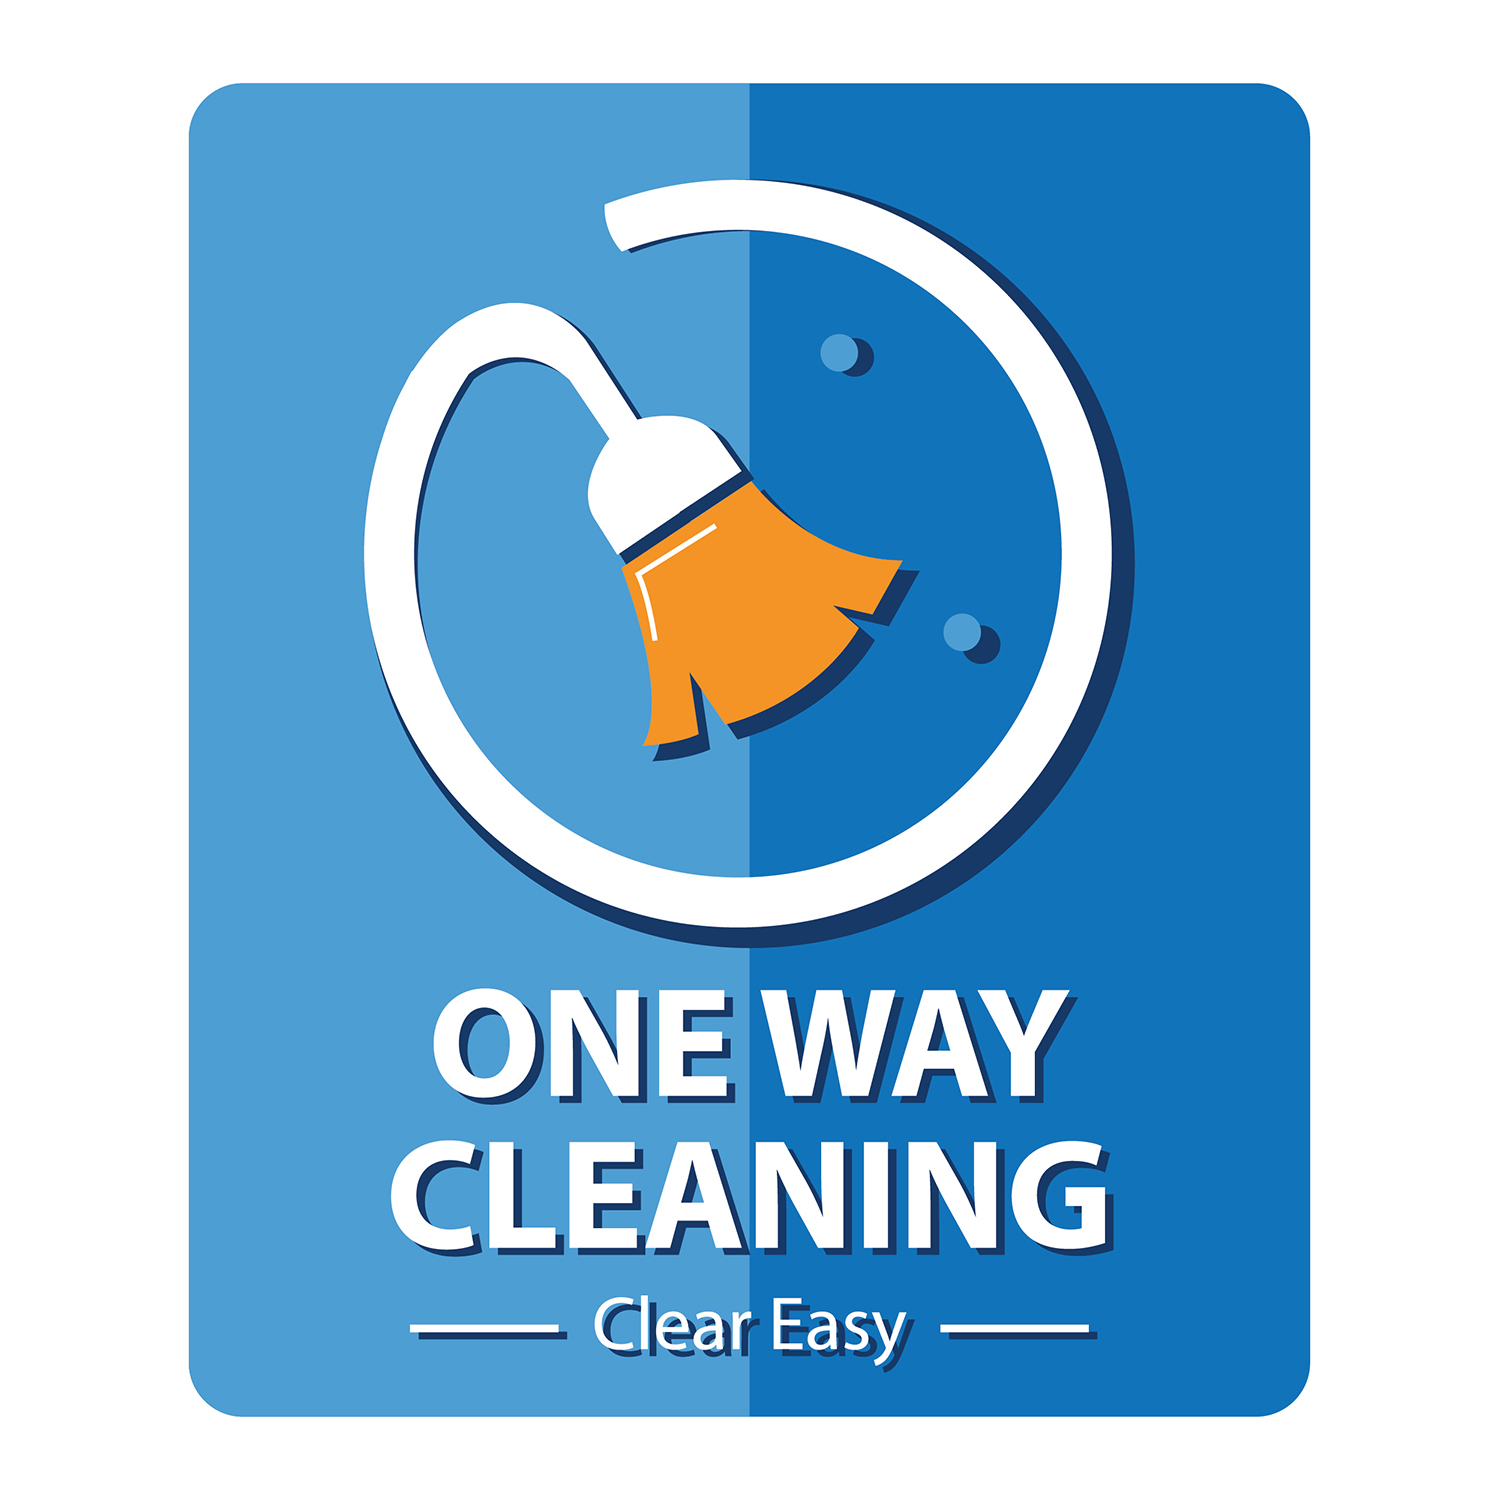 Logo Design By Lasiaf28 For One Way Cleaning 19842889